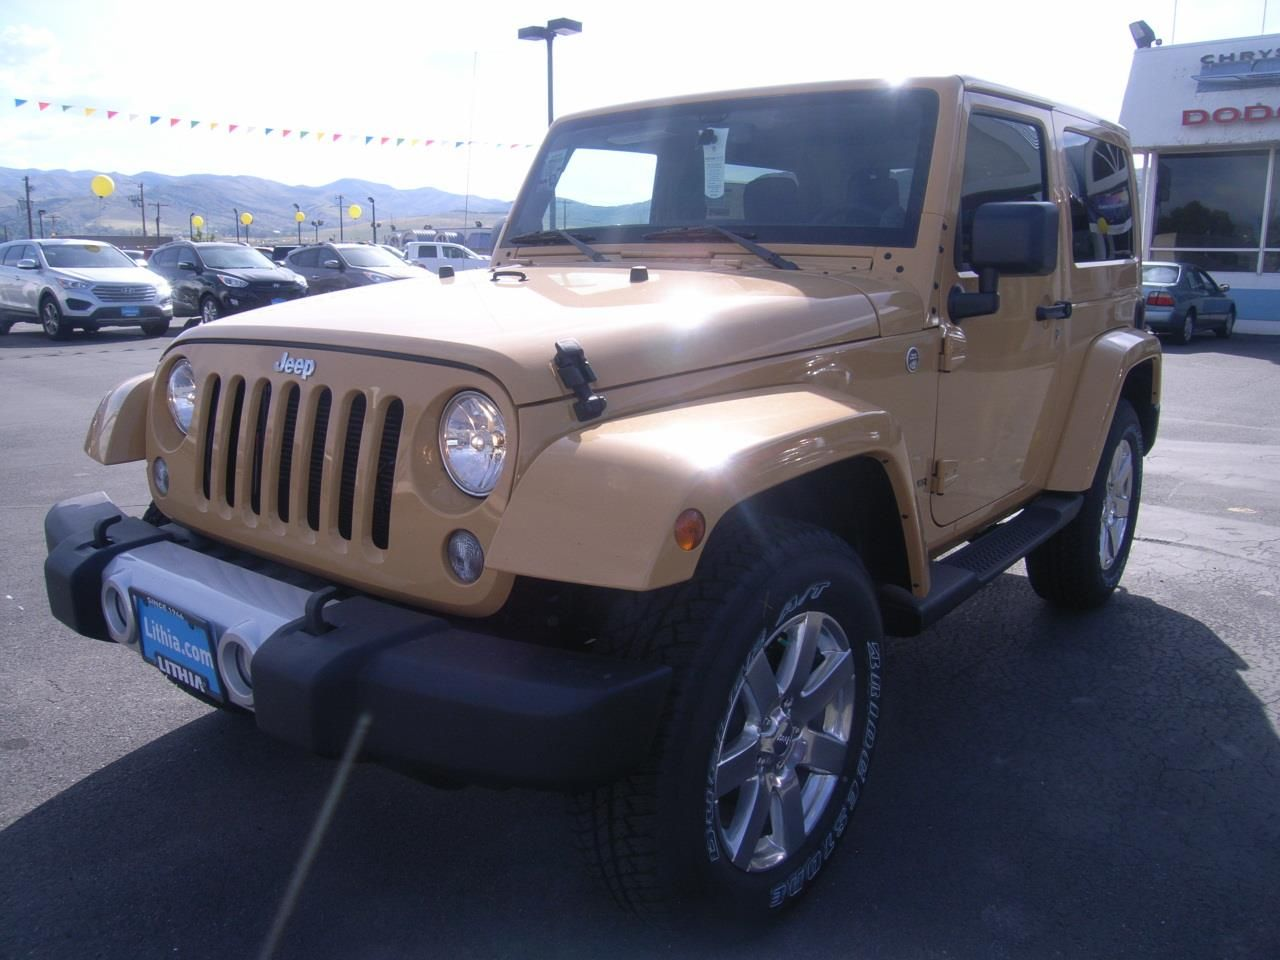 2014 jeep wrangler sahara 4x4 sahara 2dr suv suv 2 doors dune clear coat for sale in pocatello. Black Bedroom Furniture Sets. Home Design Ideas